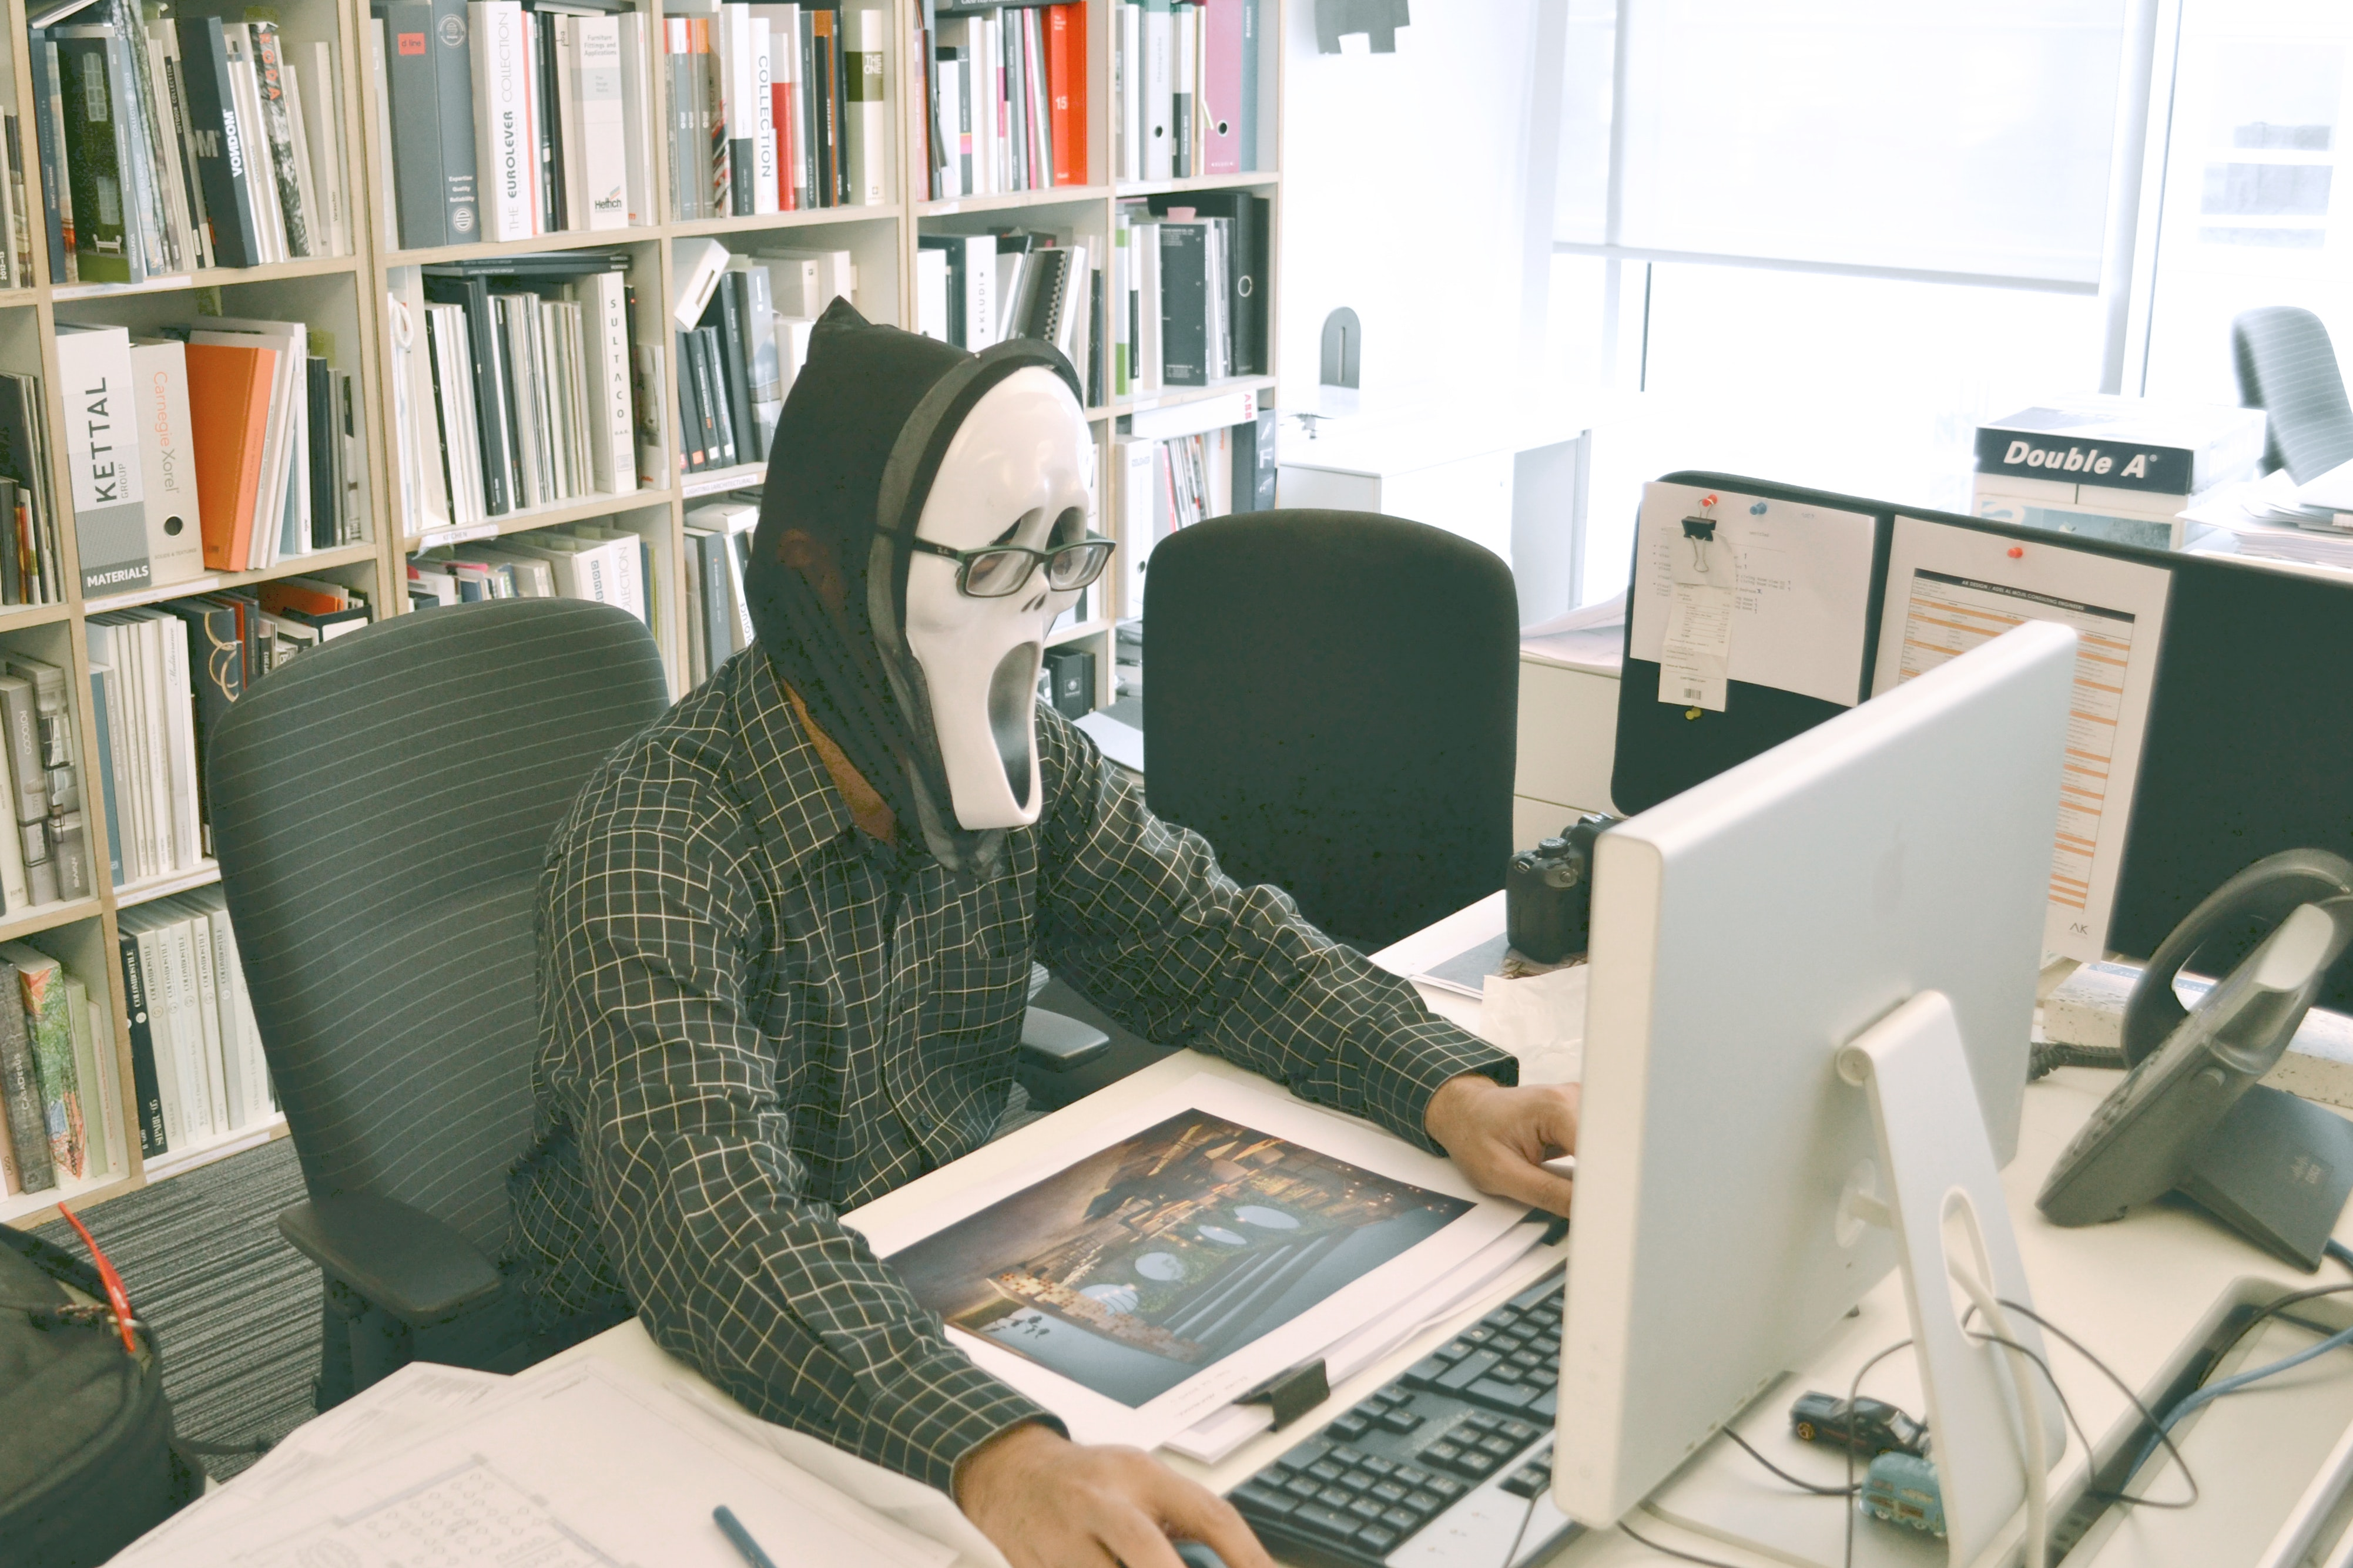 Person Wearing Scream Mask and Black Dress Shirt While Facing Computer Table during Daytime, Adult, Mask, Technology, Table, HQ Photo